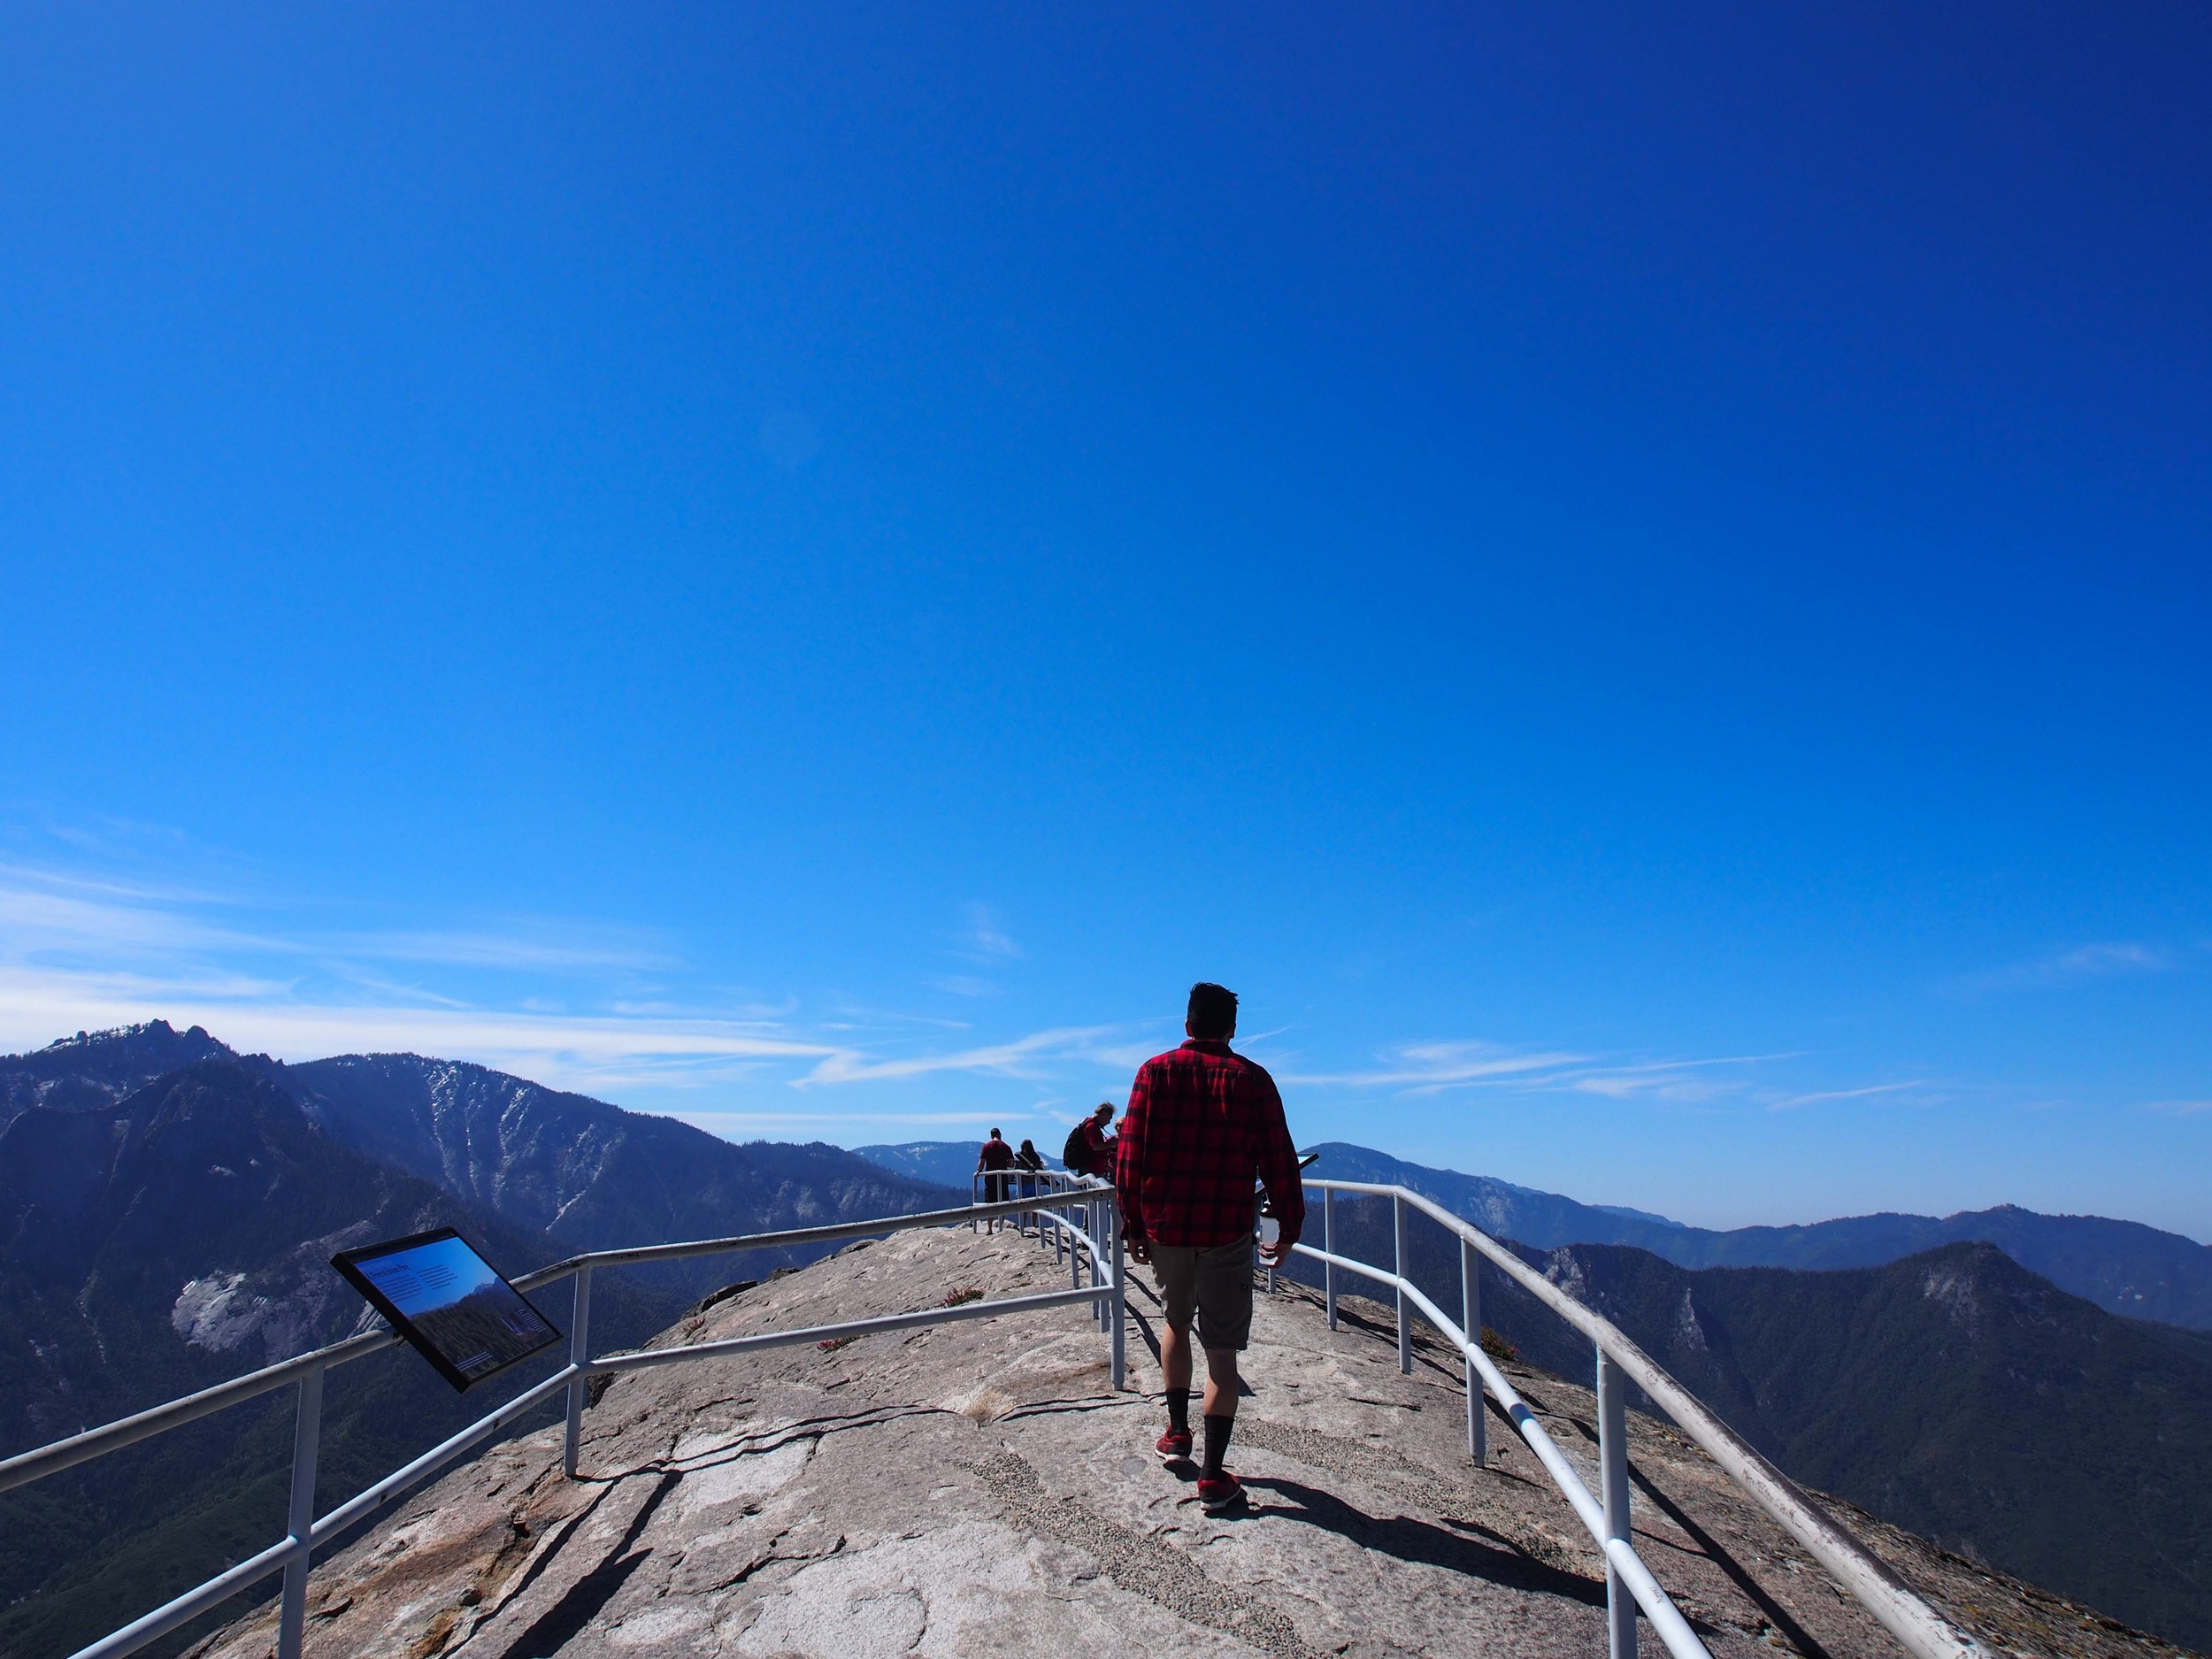 Emerging onto the top of the rock